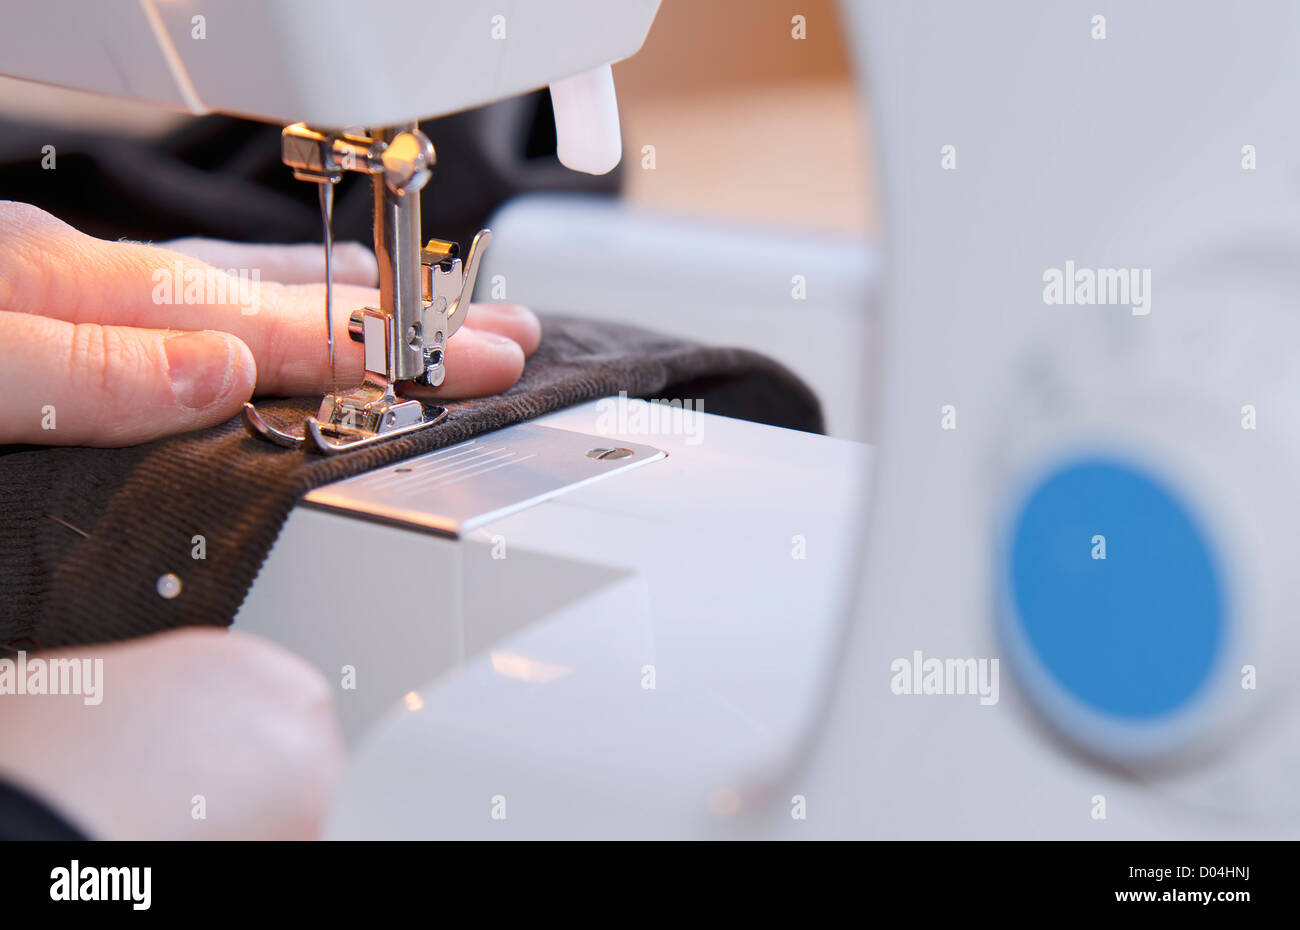 woman hands sewing on the stitching machine - Stock Image